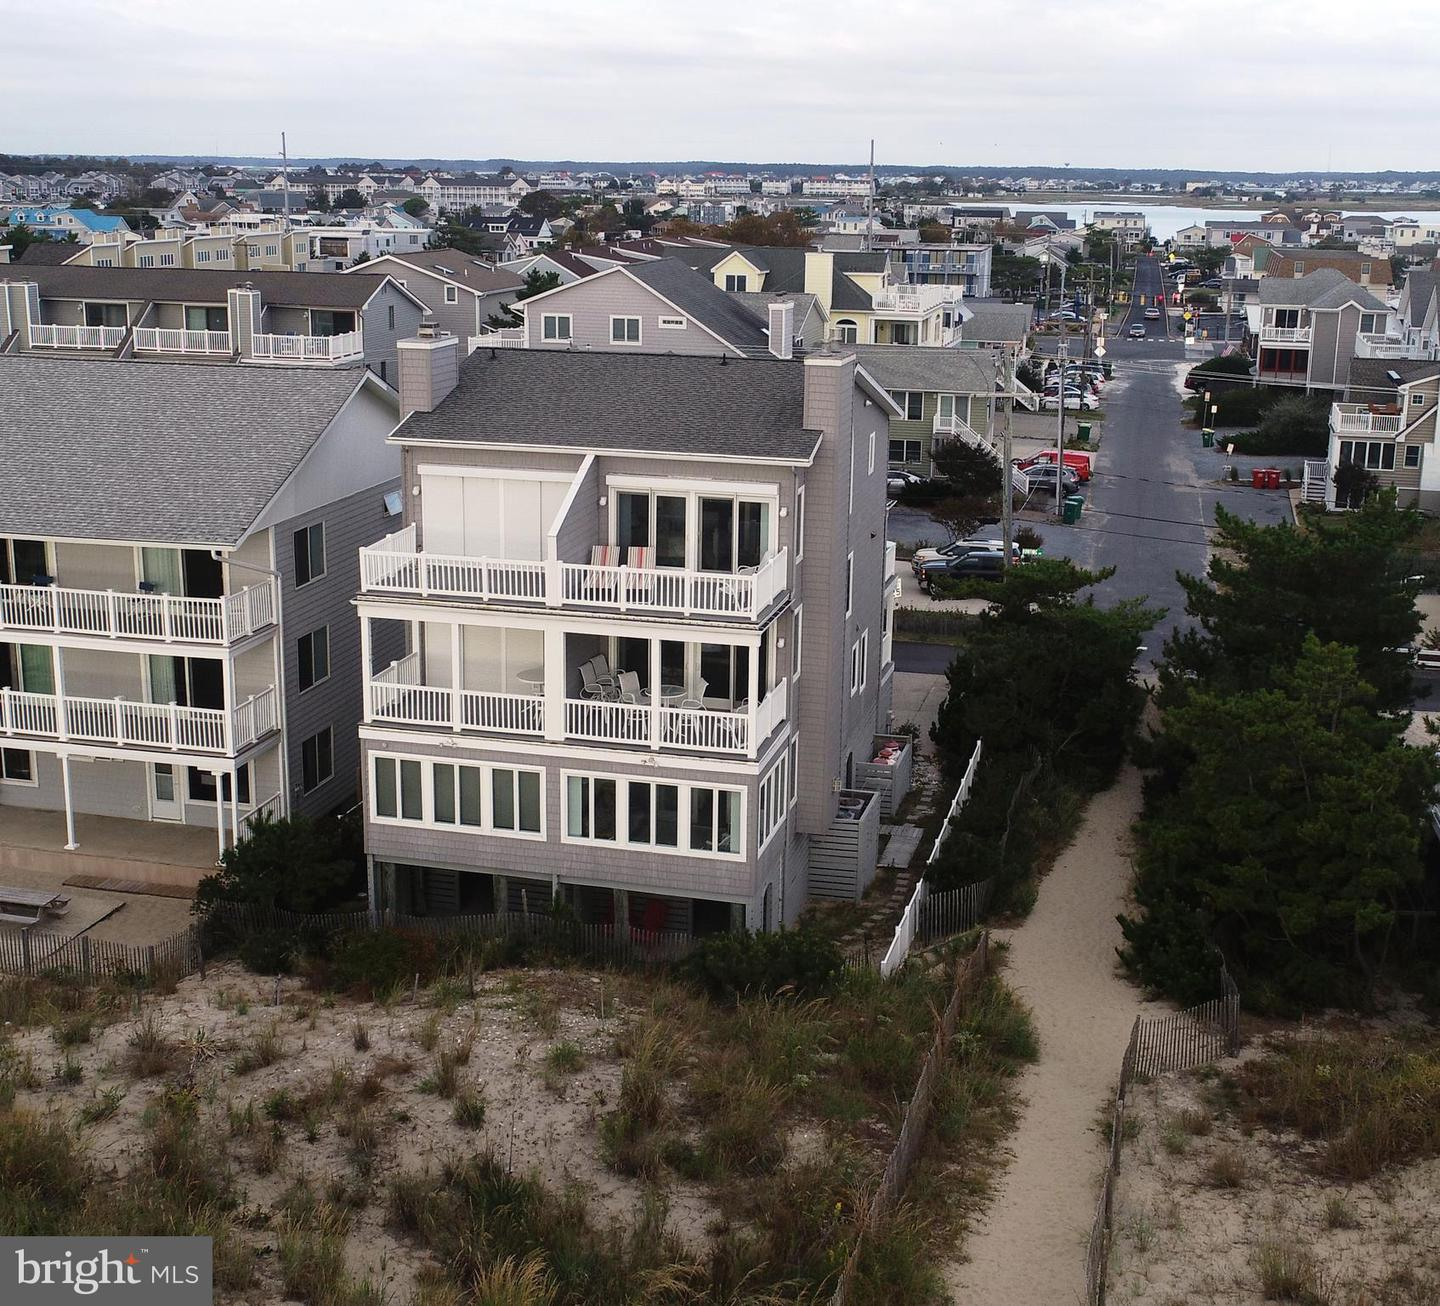 DESU148906-302085635856-2019-09-30-09-08-56 38799 Bunting Ave #1 | Fenwick Island, DE Real Estate For Sale | MLS# Desu148906  - Jack Lingo REALTOR